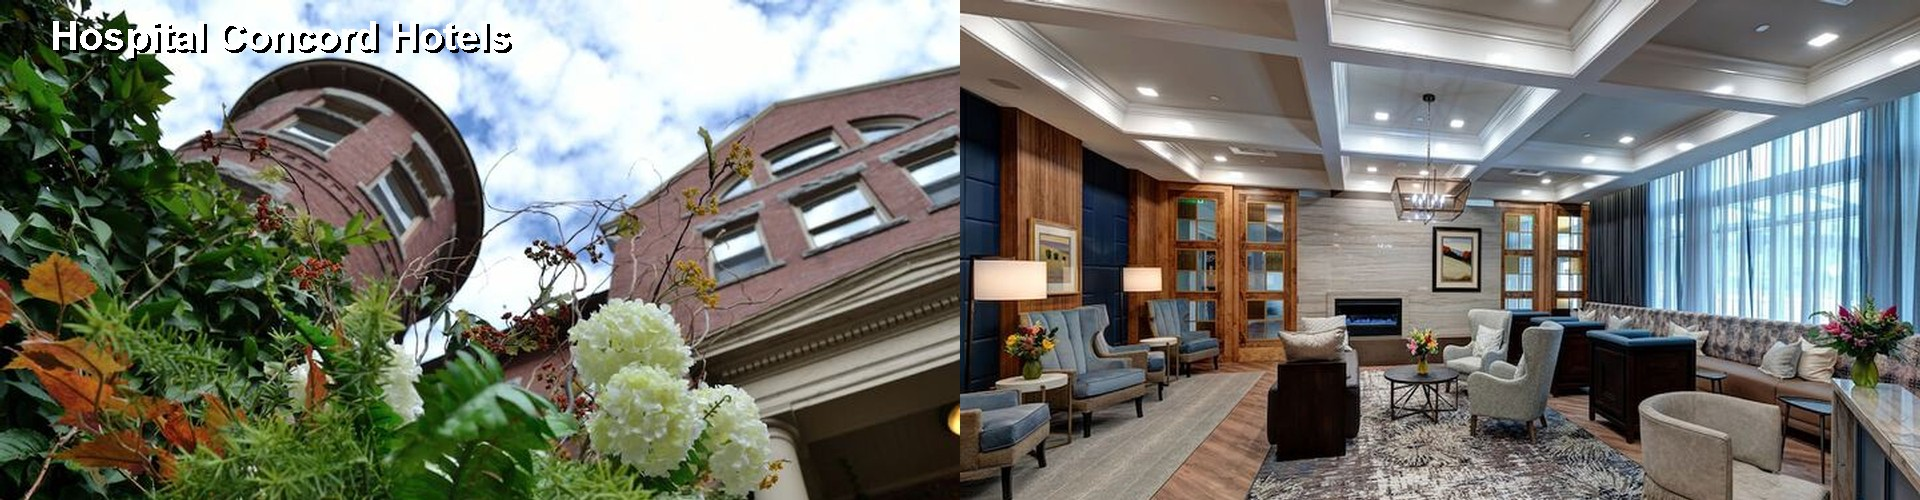 5 Best Hotels near Hospital Concord